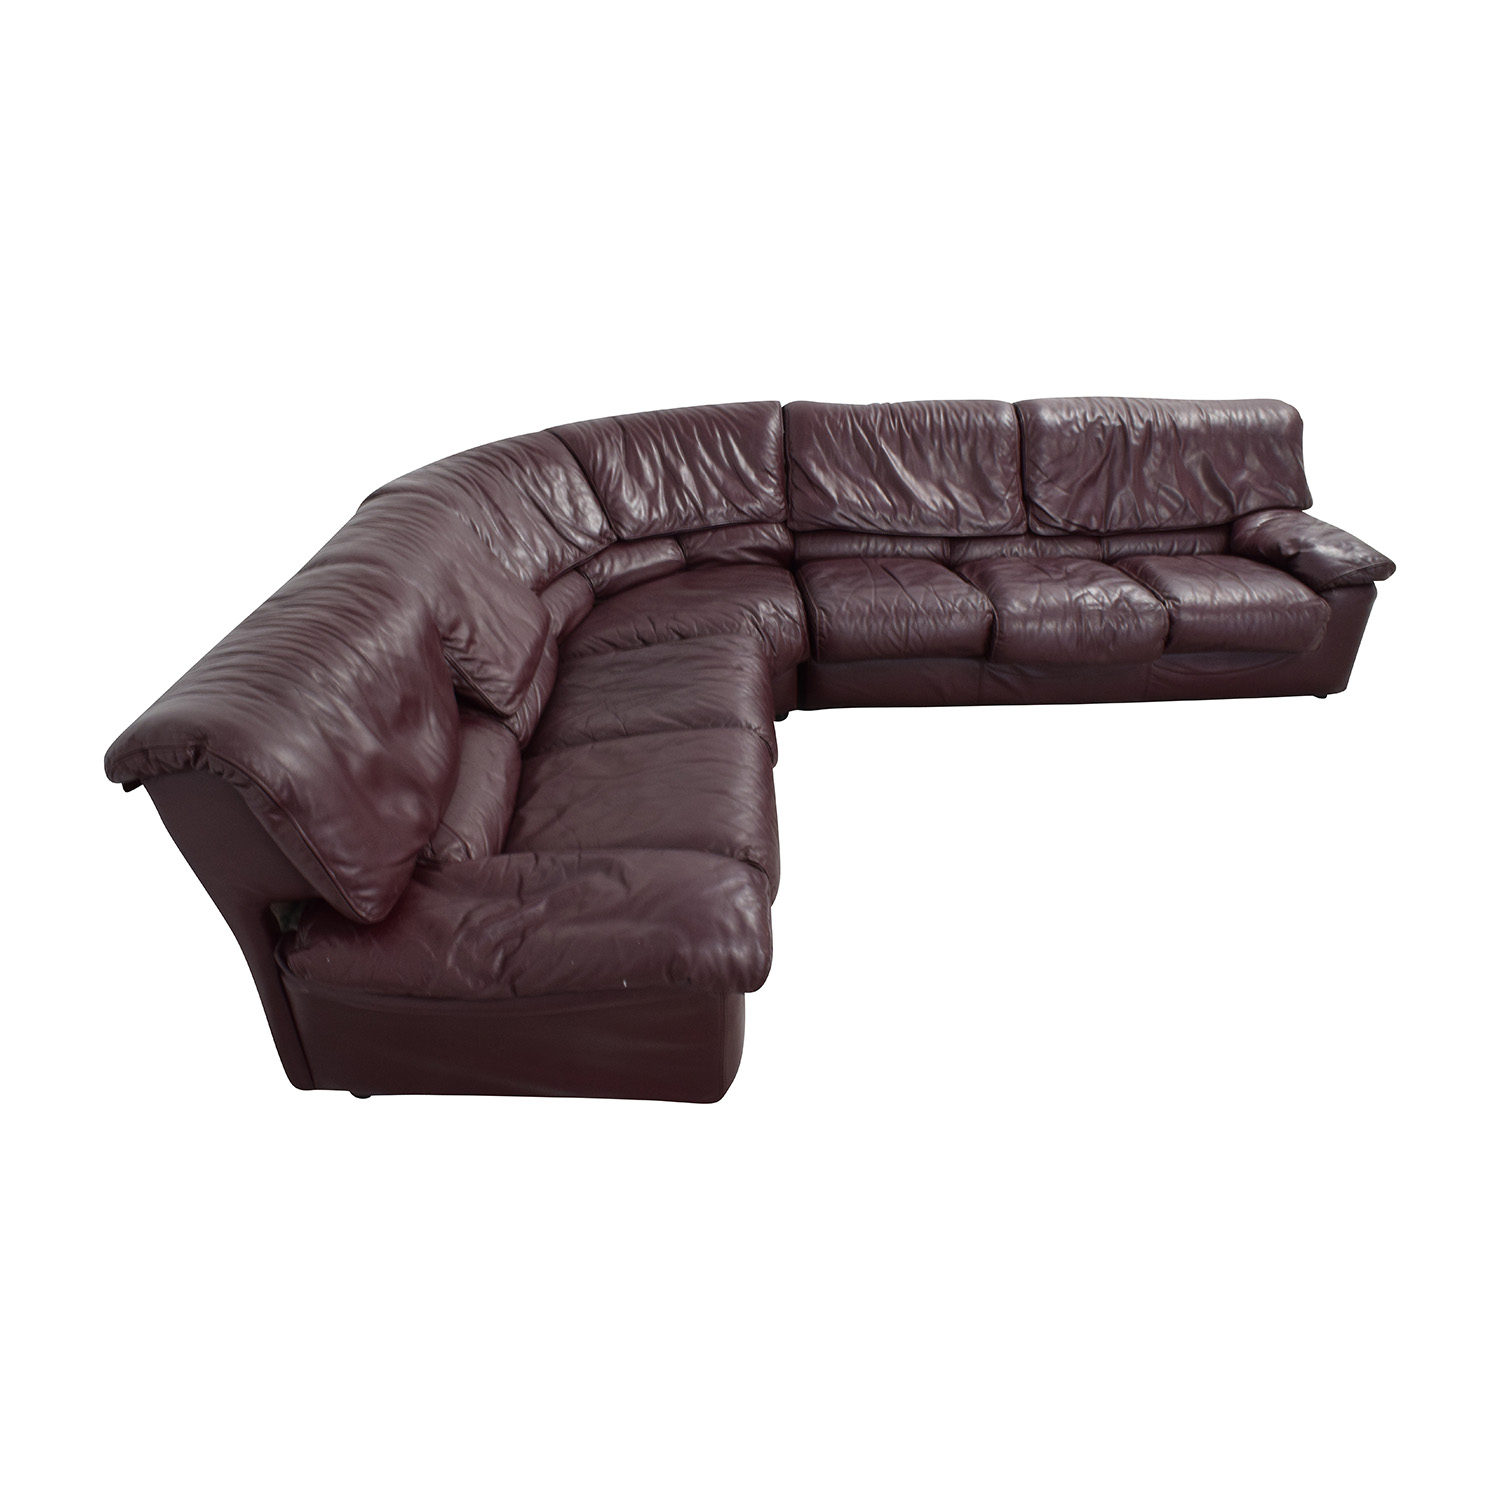 ... Roche Bobois Roche Bobois Brown Leather Sectional coupon ...  sc 1 st  Furnishare : sectional brown leather sofa - Sectionals, Sofas & Couches